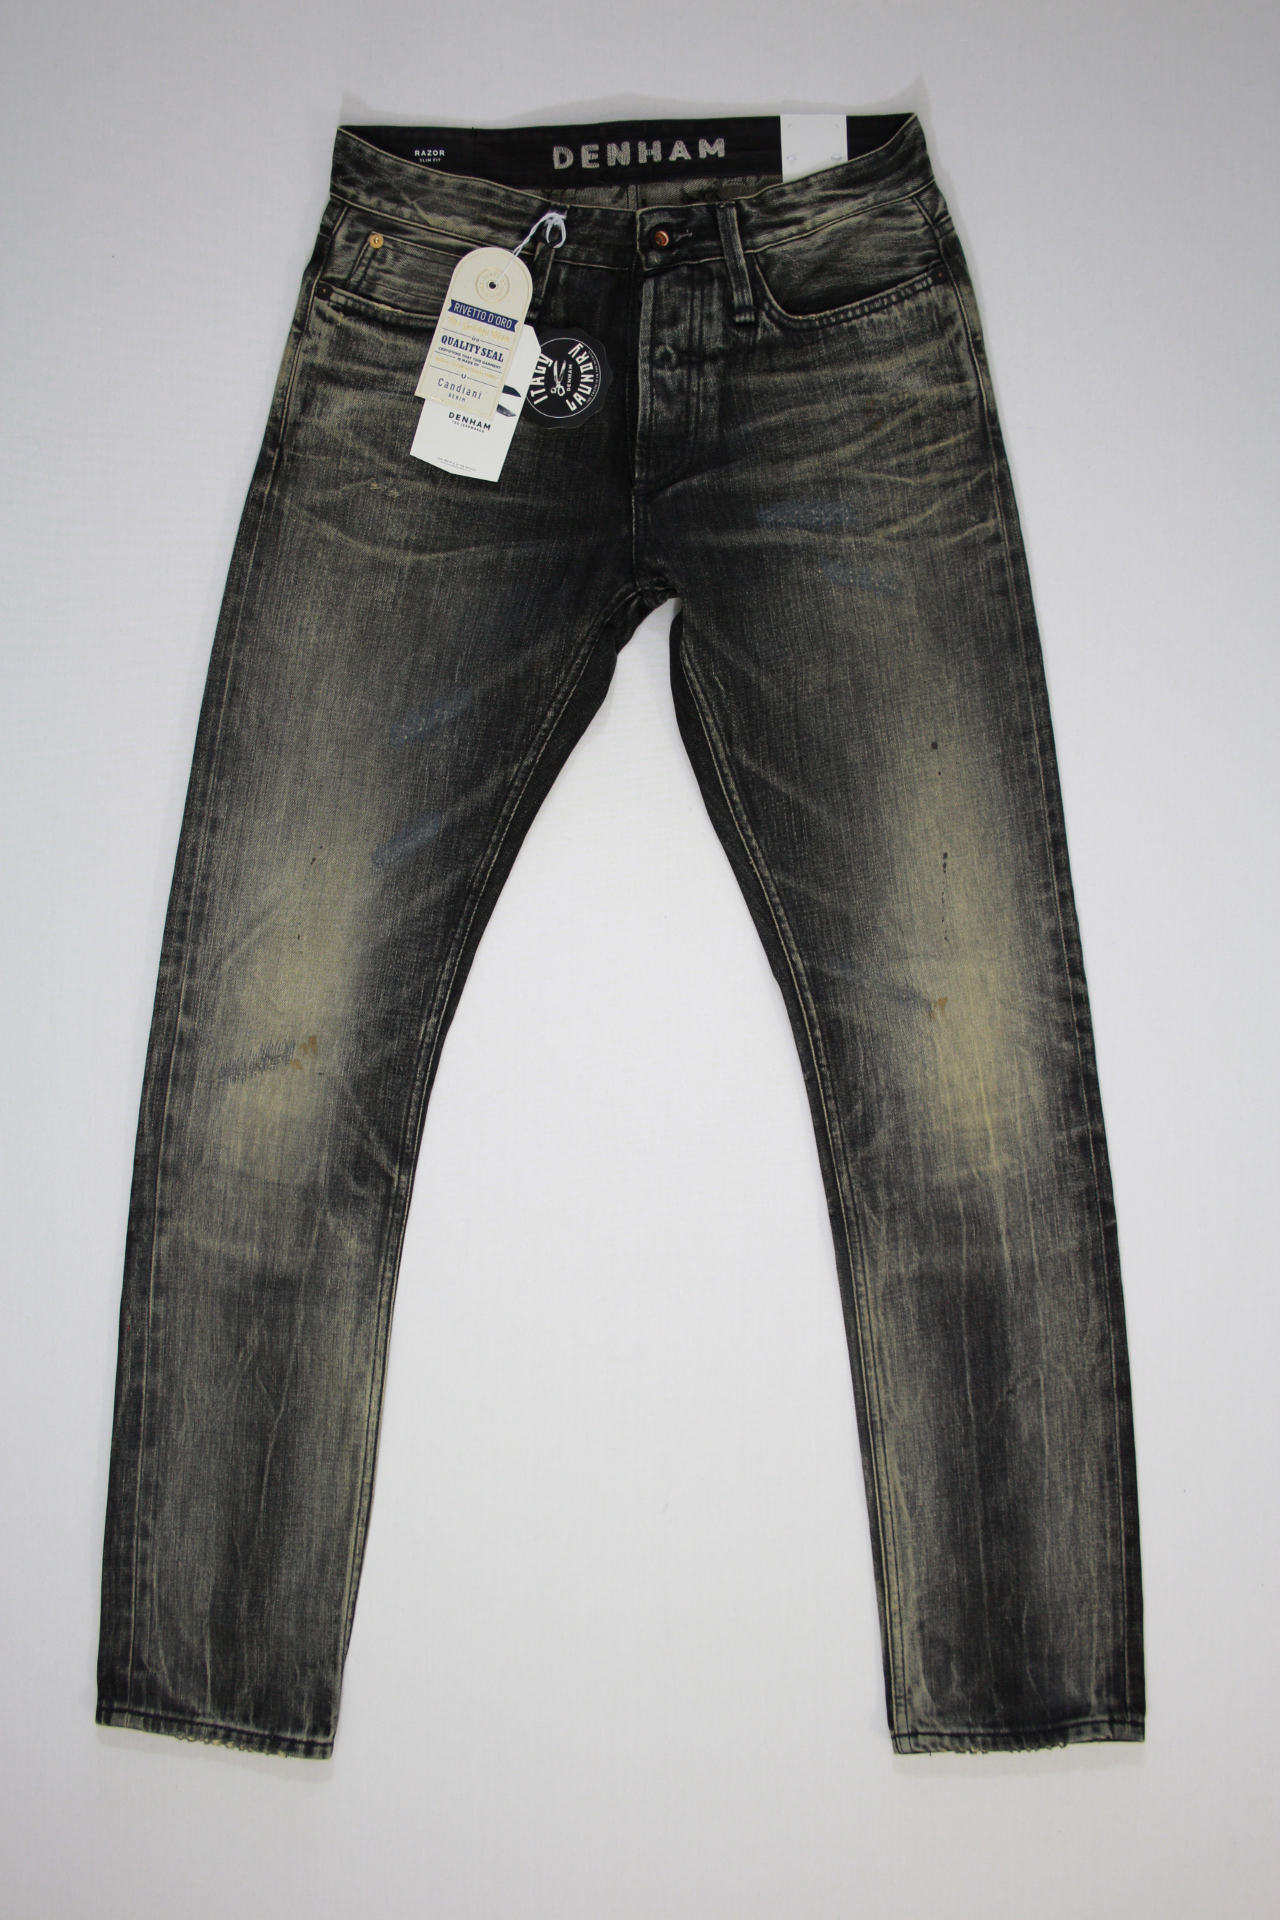 Denham Razor Japan Heavy Wash Zwart Jeans